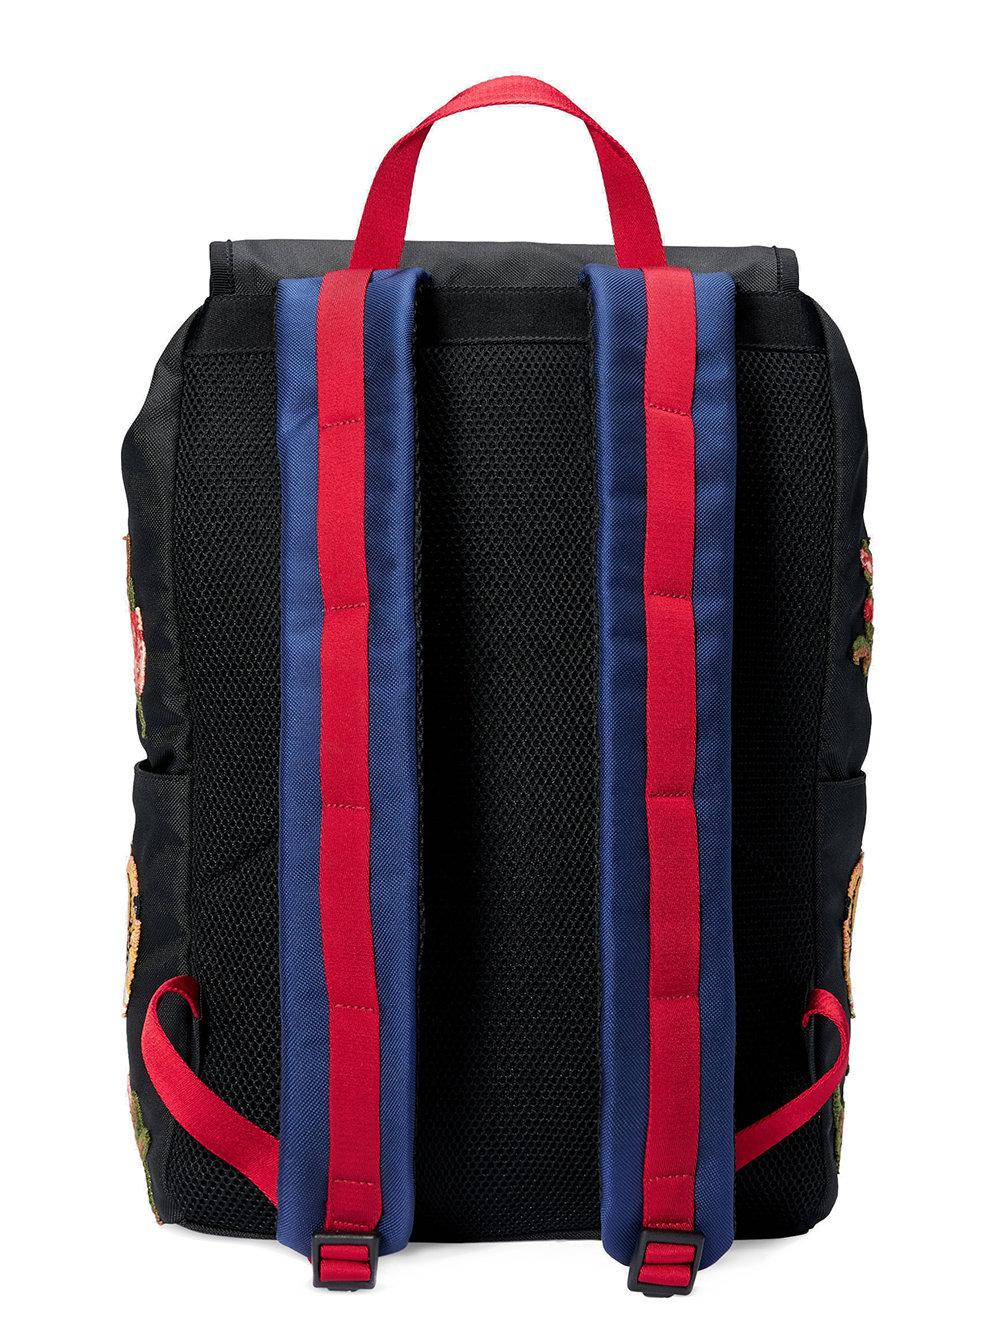 a911e57fc065 Gucci Embroidered Technical Canvas Backpack in Black - Lyst